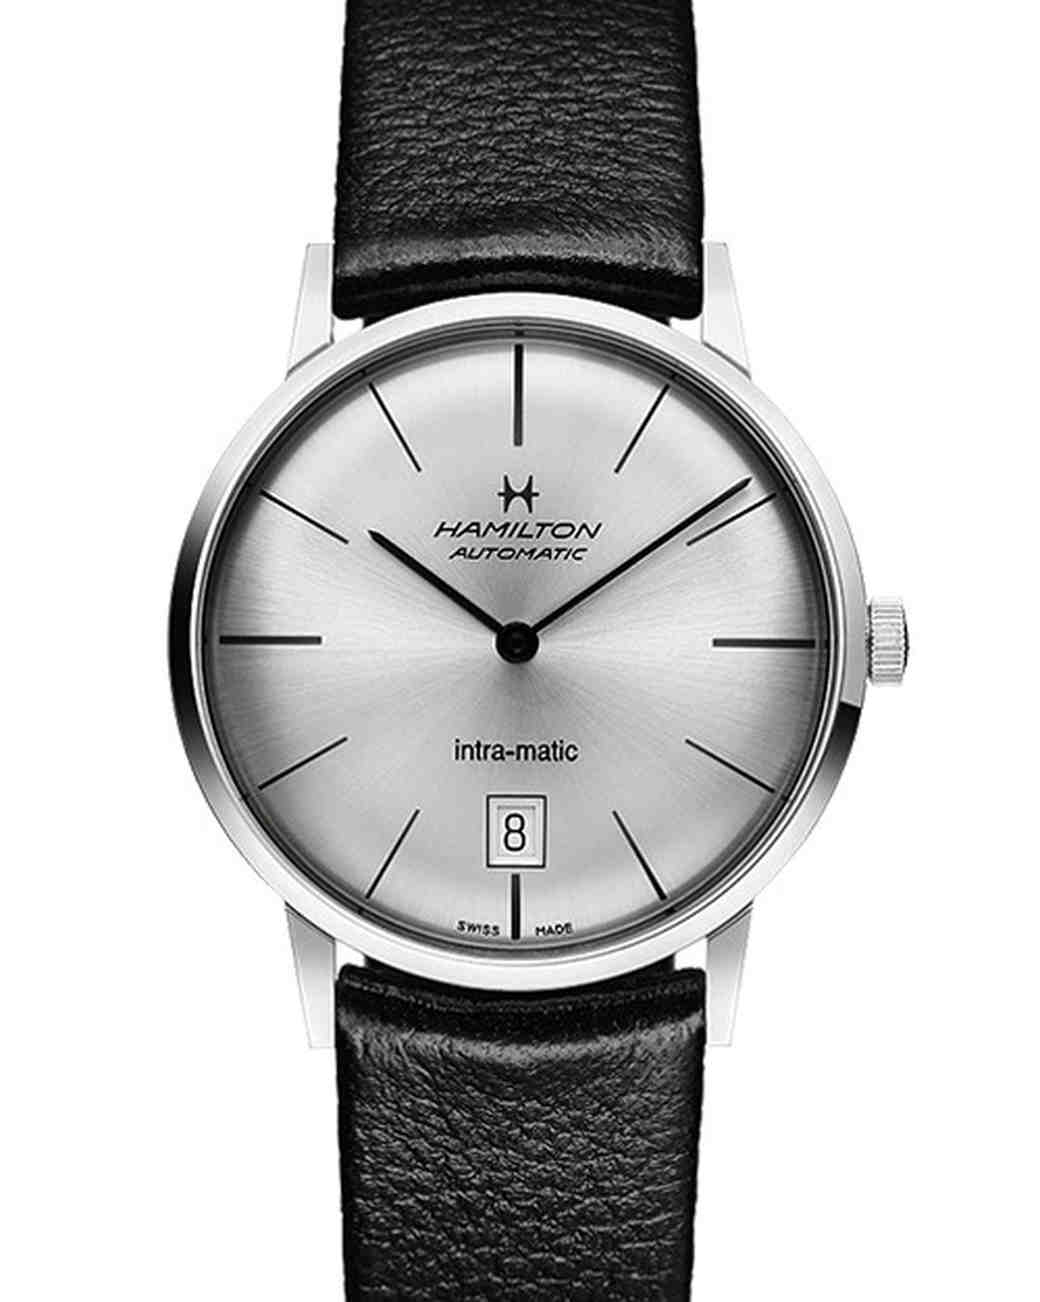 Hamilton Intra-Matic Auto Watch in Black Leather